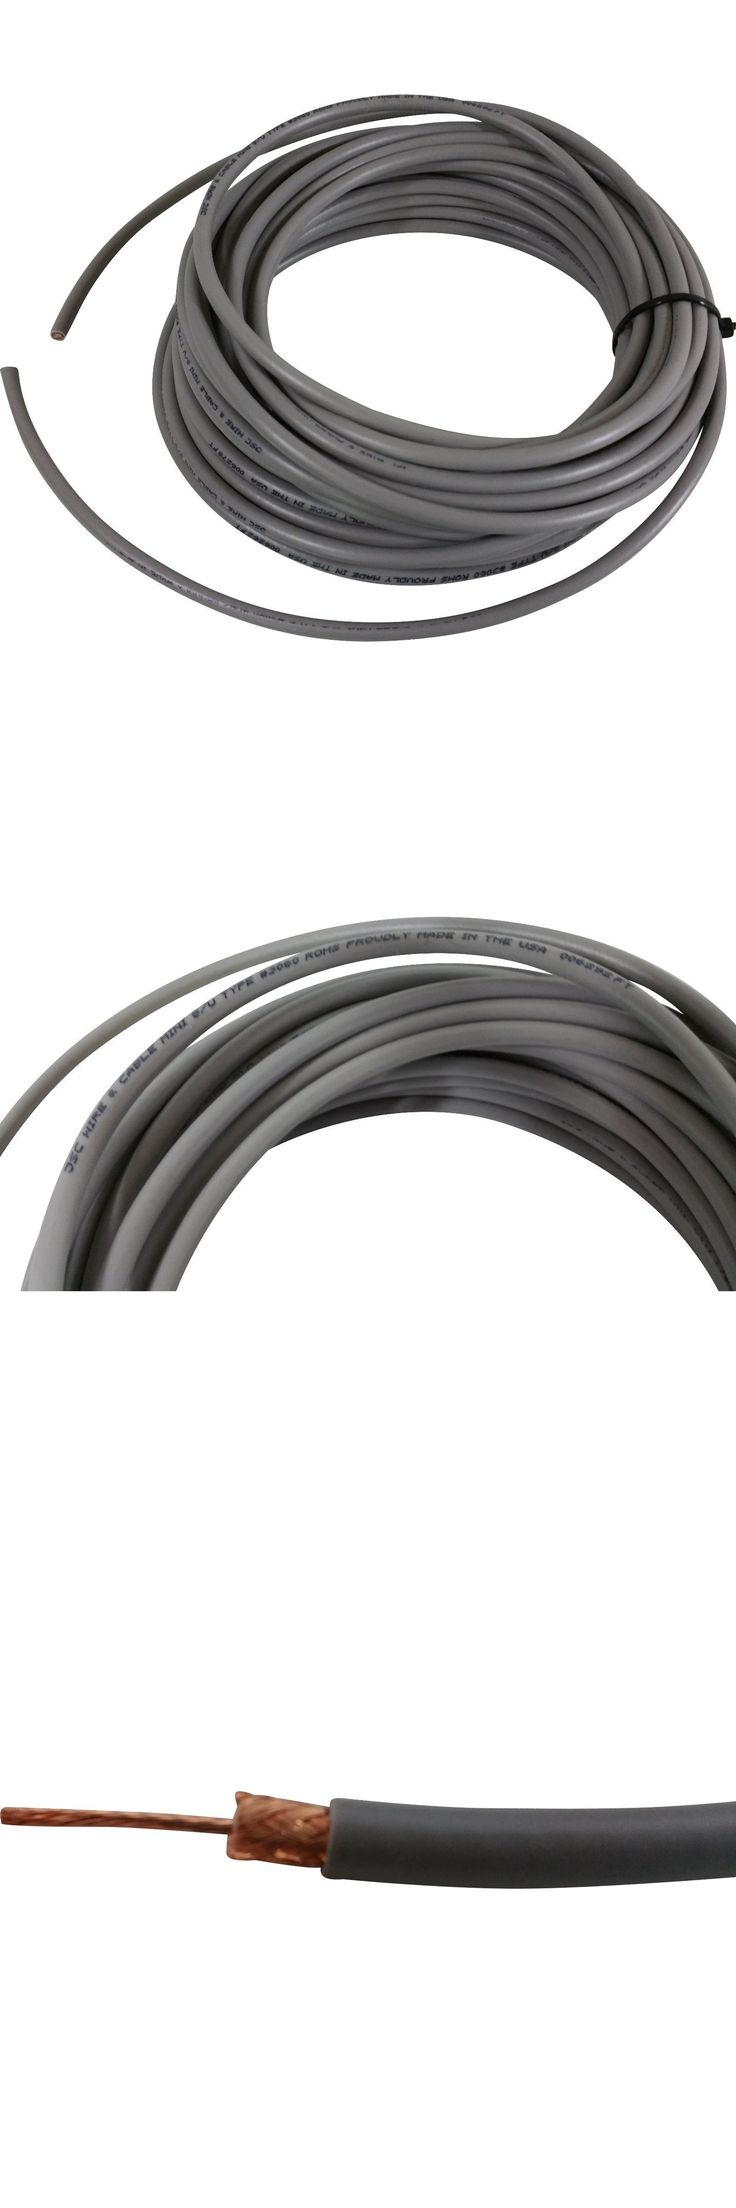 Coax Cables and Connectors: Jsc Wire And Cable Rg8x 95% Shield 100Ft Coax Cable Cb,Ham,Scanner Radios Usa Made -> BUY IT NOW ONLY: $59.99 on eBay!